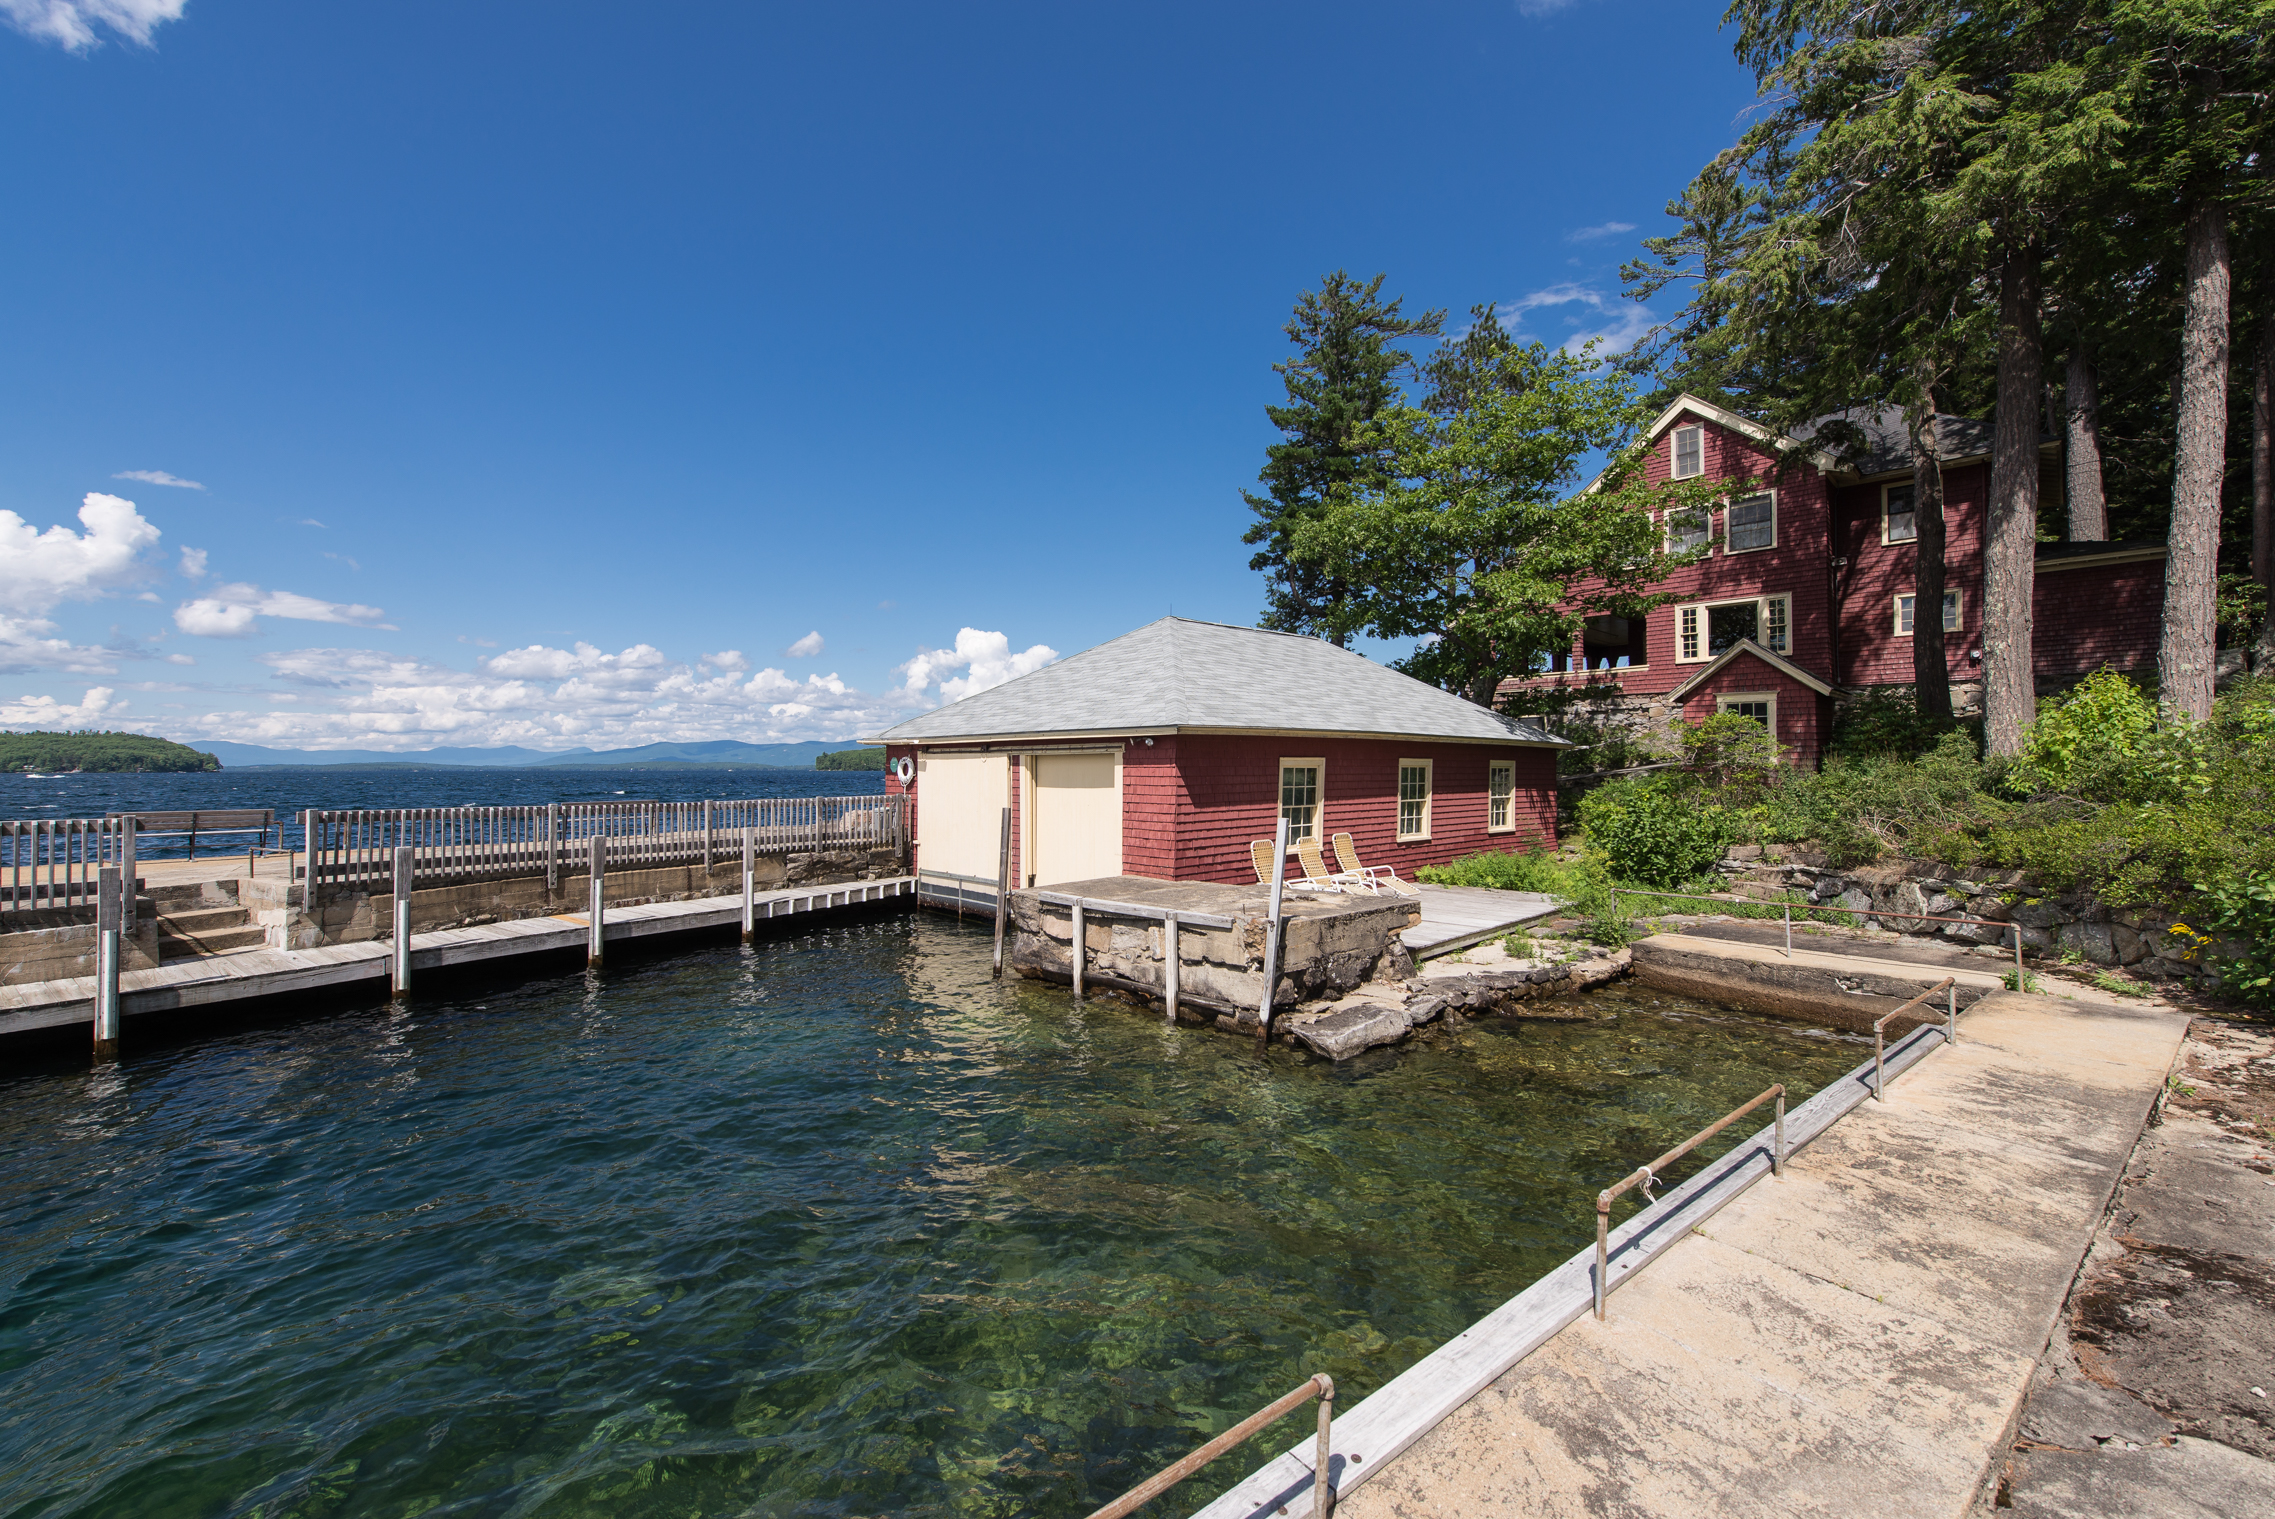 Single Family Home for Sale at Classic 1912 Winnipesaukee Compound 150 Smith Point Rd Alton, New Hampshire, 03810 United States